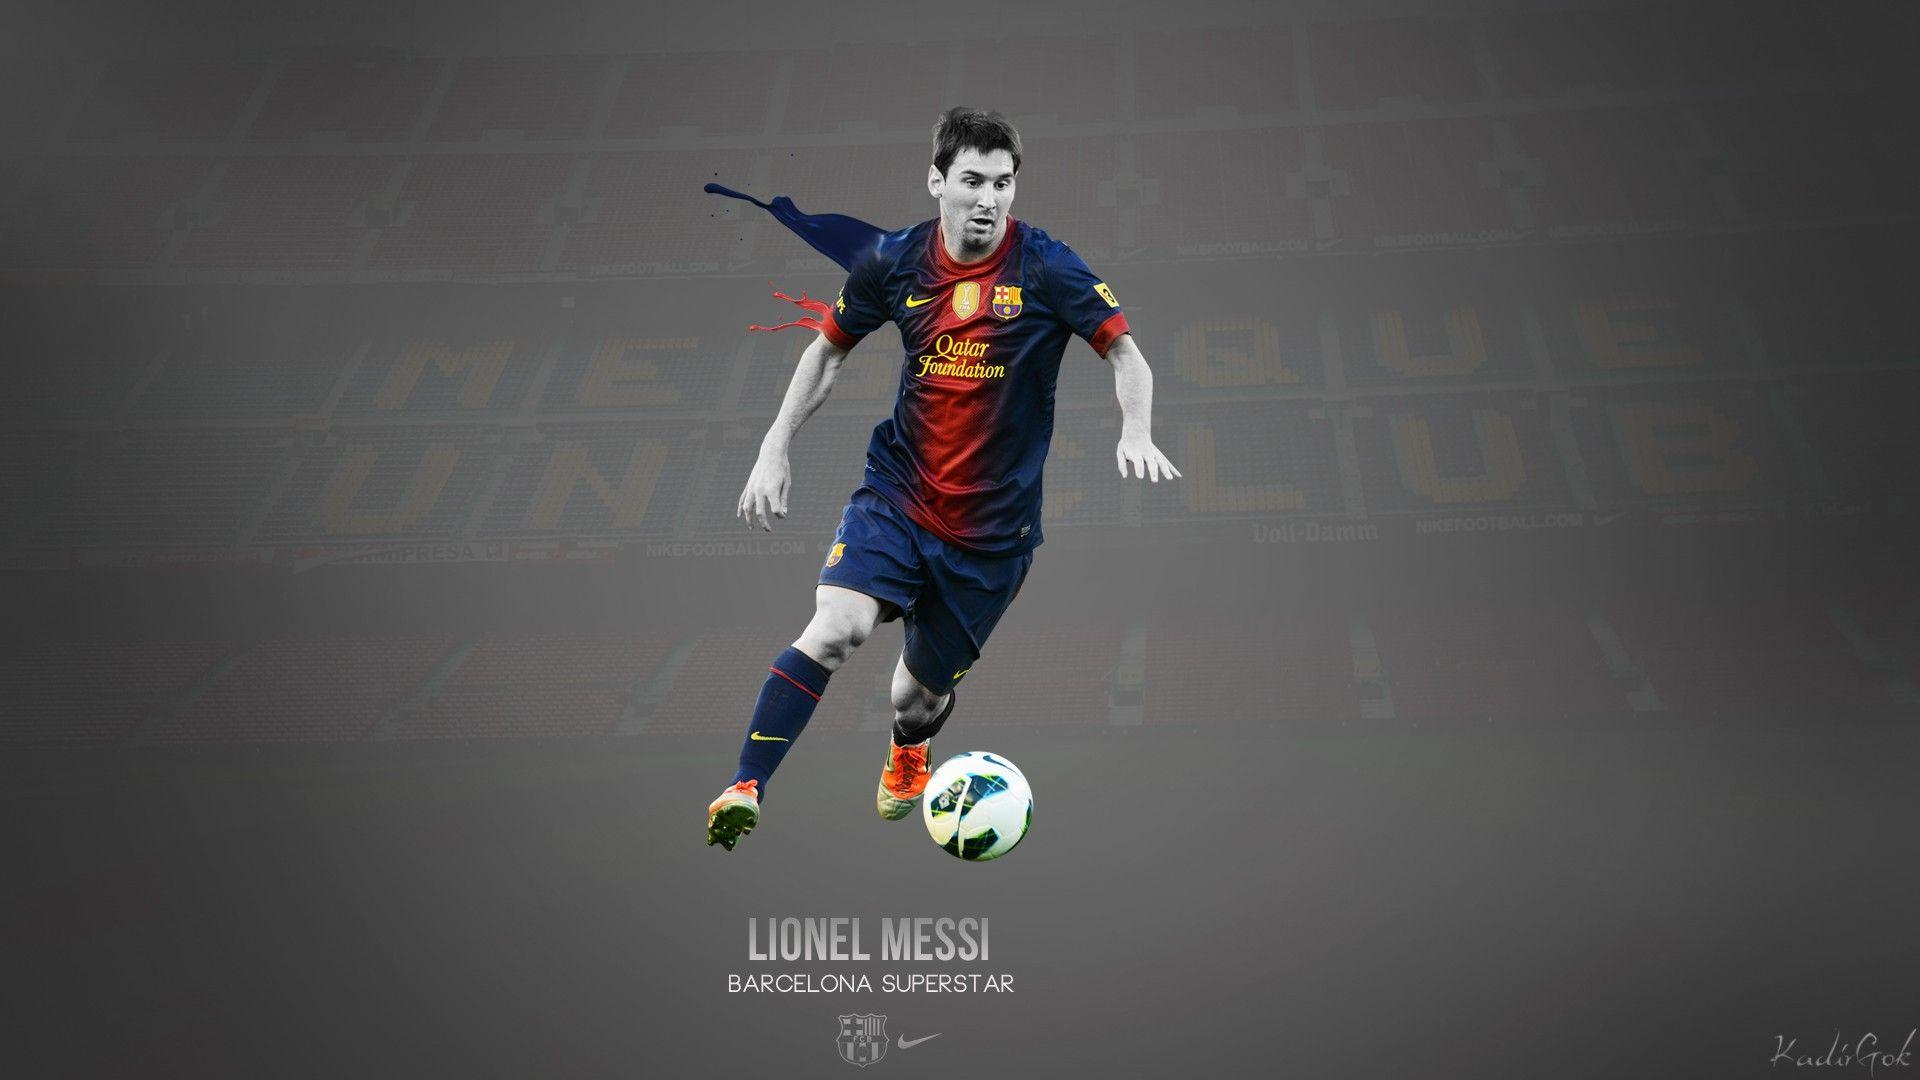 Full HD Lionel Messi 1920×1080 Wallpapers | HD Wallpapers ...